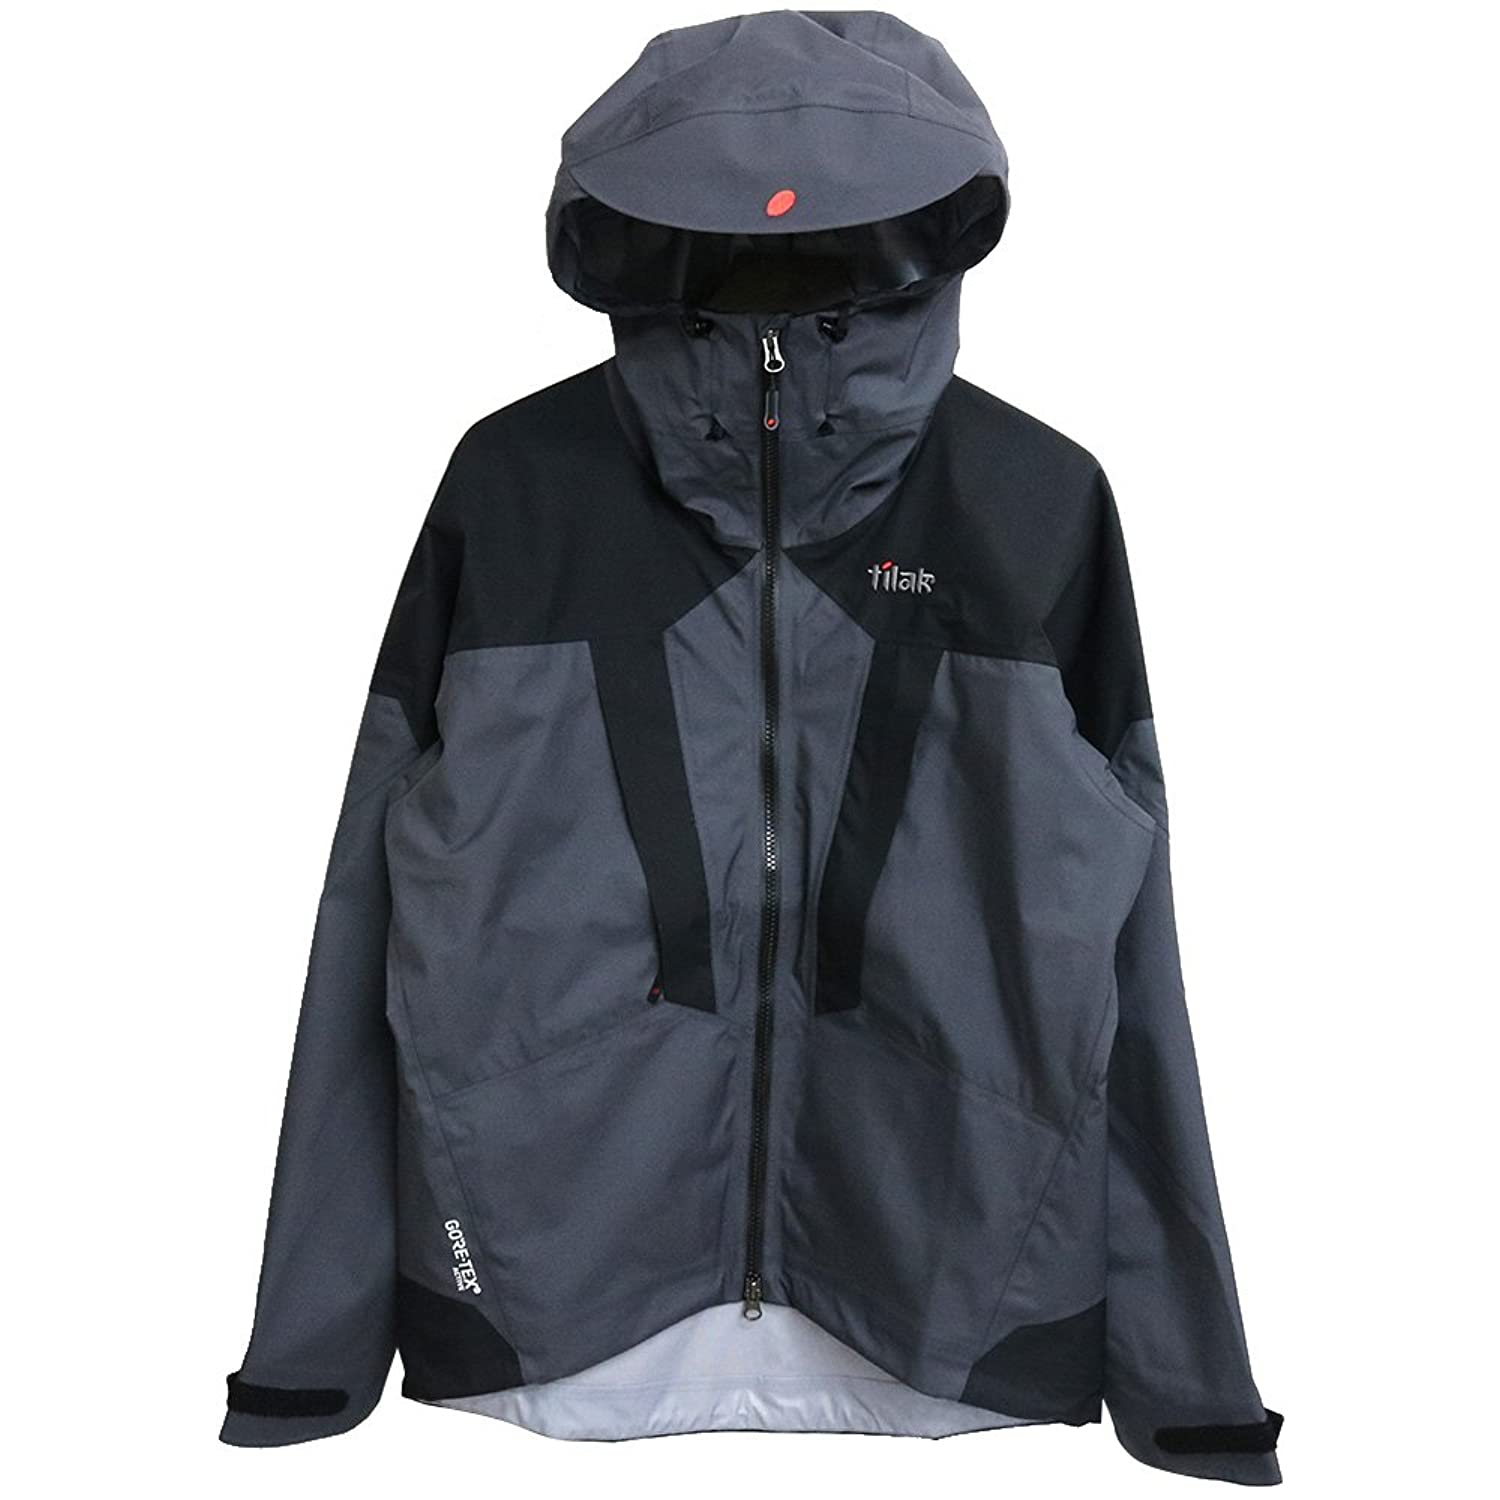 (ティラック) Tilak『STINGER JACKET』(Ebony Grey/Caviar Black)【日本正規取扱店】 B077BZNZND  Ebony Grey/Caviar Black M